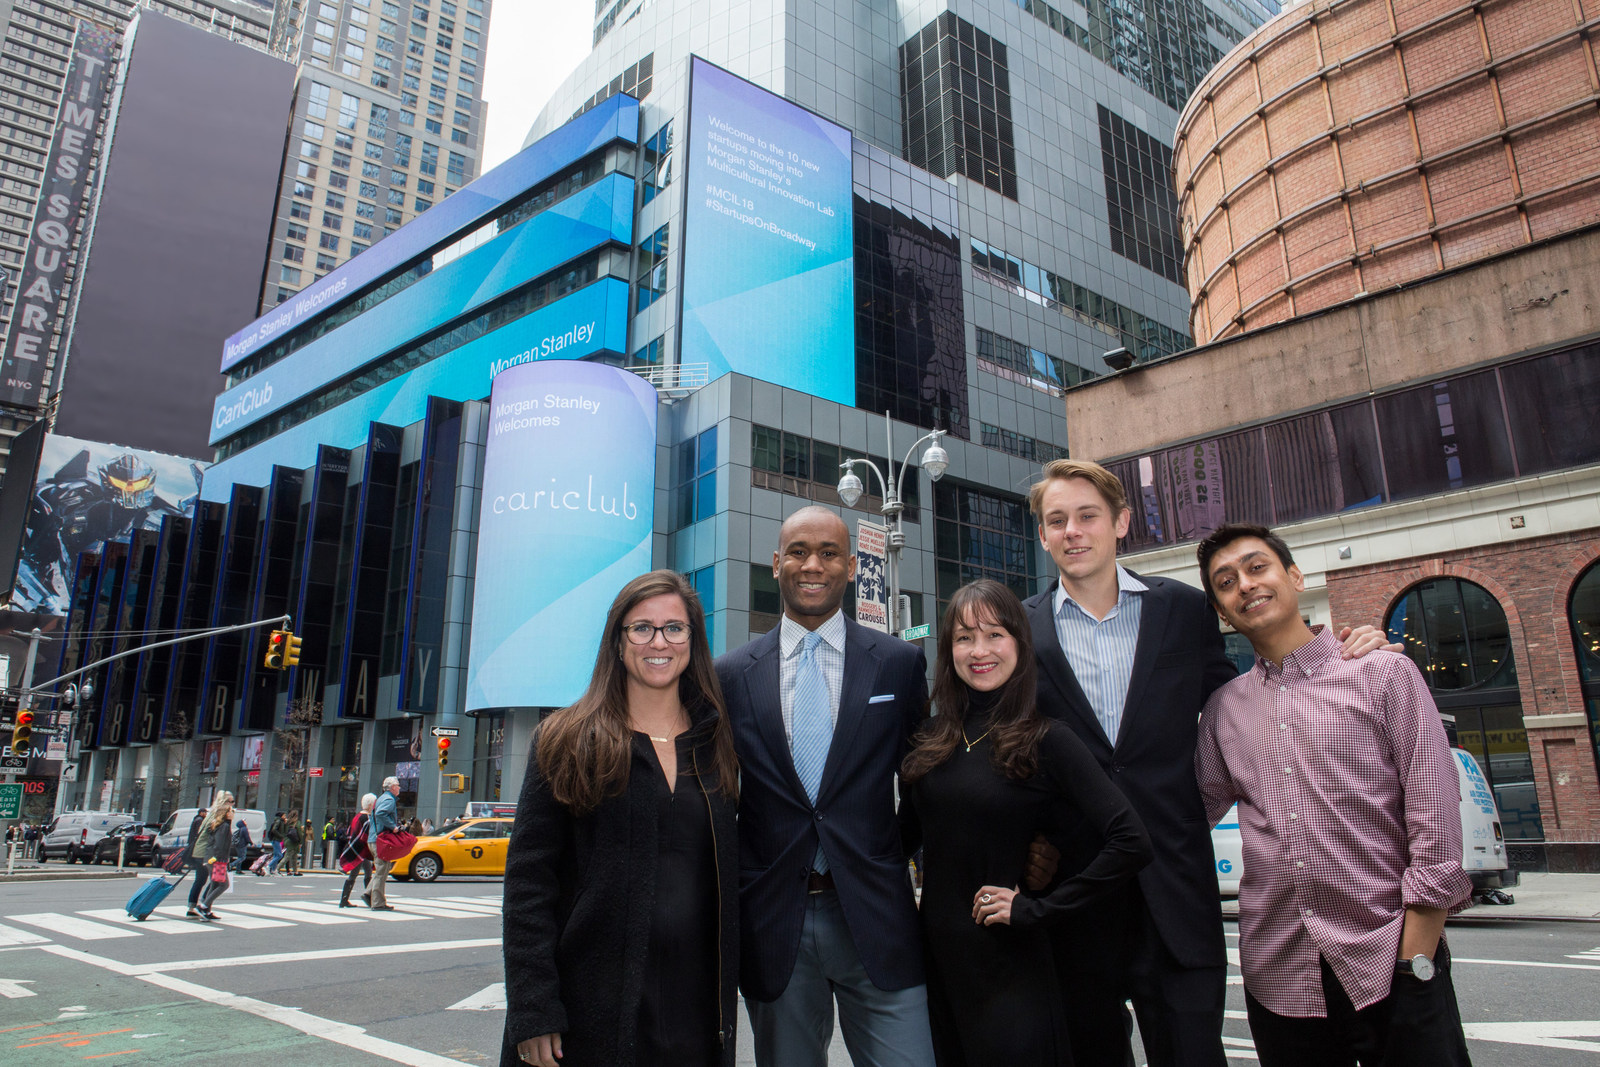 cariclub selected as one of morgan stanleys 10 startup companies for 2018 second cohort of multicultural innovation lab